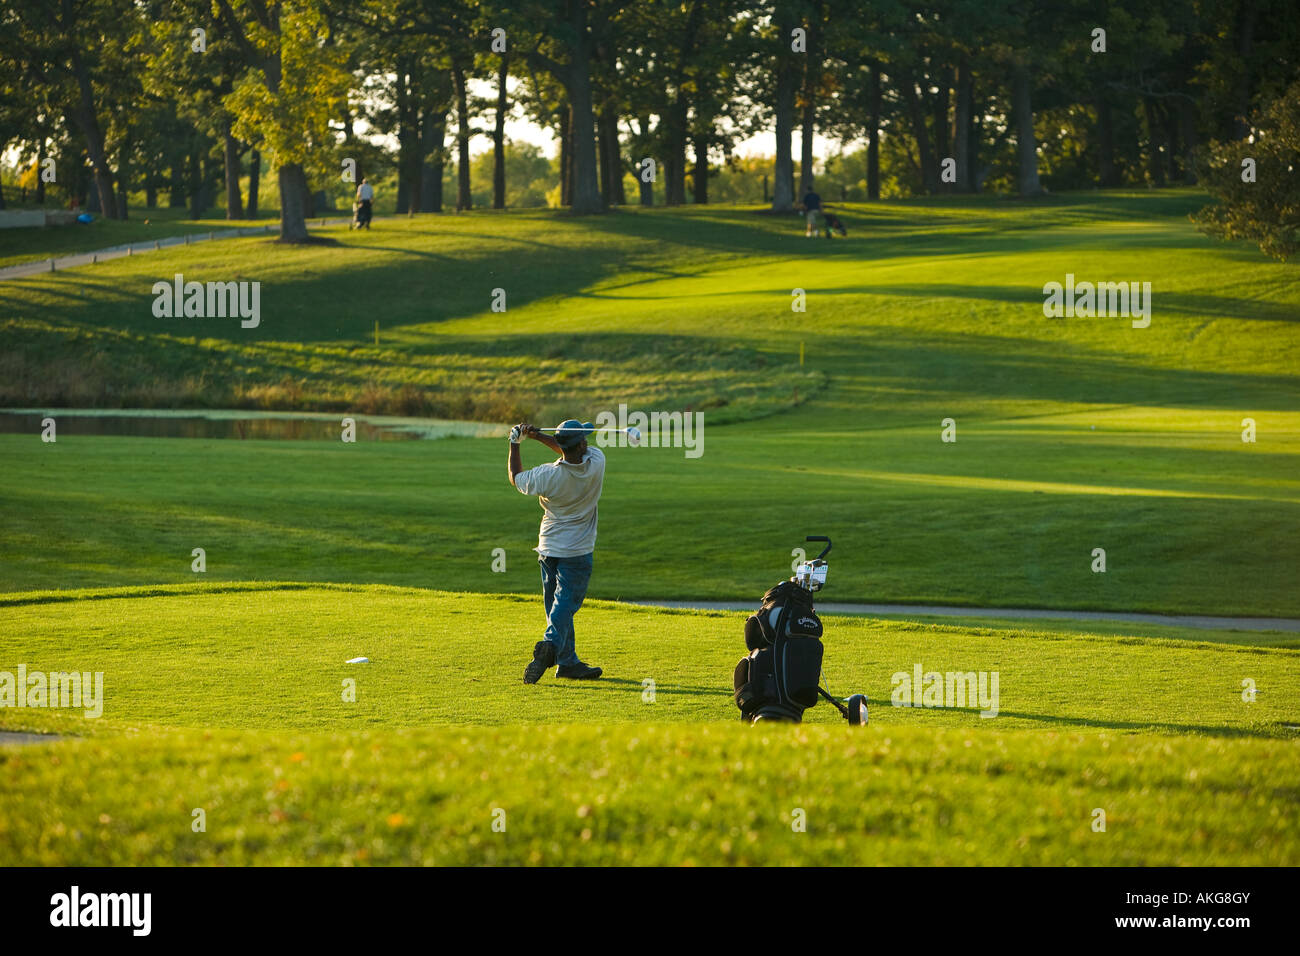 ILLINOIS Aurora Male golfer tee off at Philips Park public golf course club behind back on follow through golf bag - Stock Image